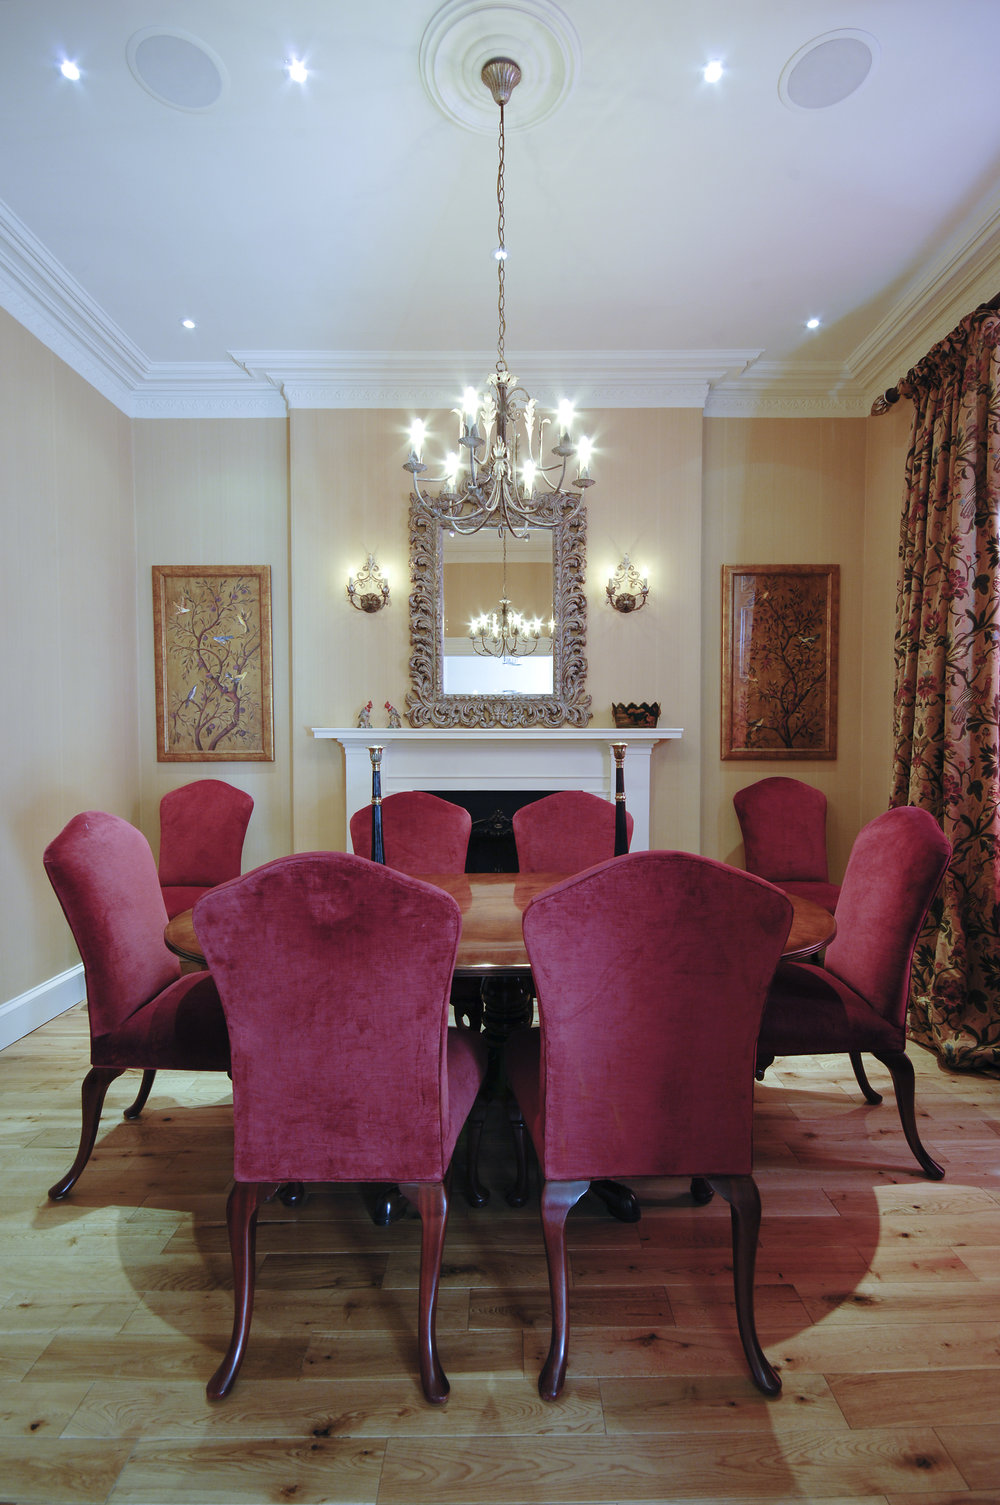 C WARMENHOVEN SCOTLAND_DINING ROOM.jpg